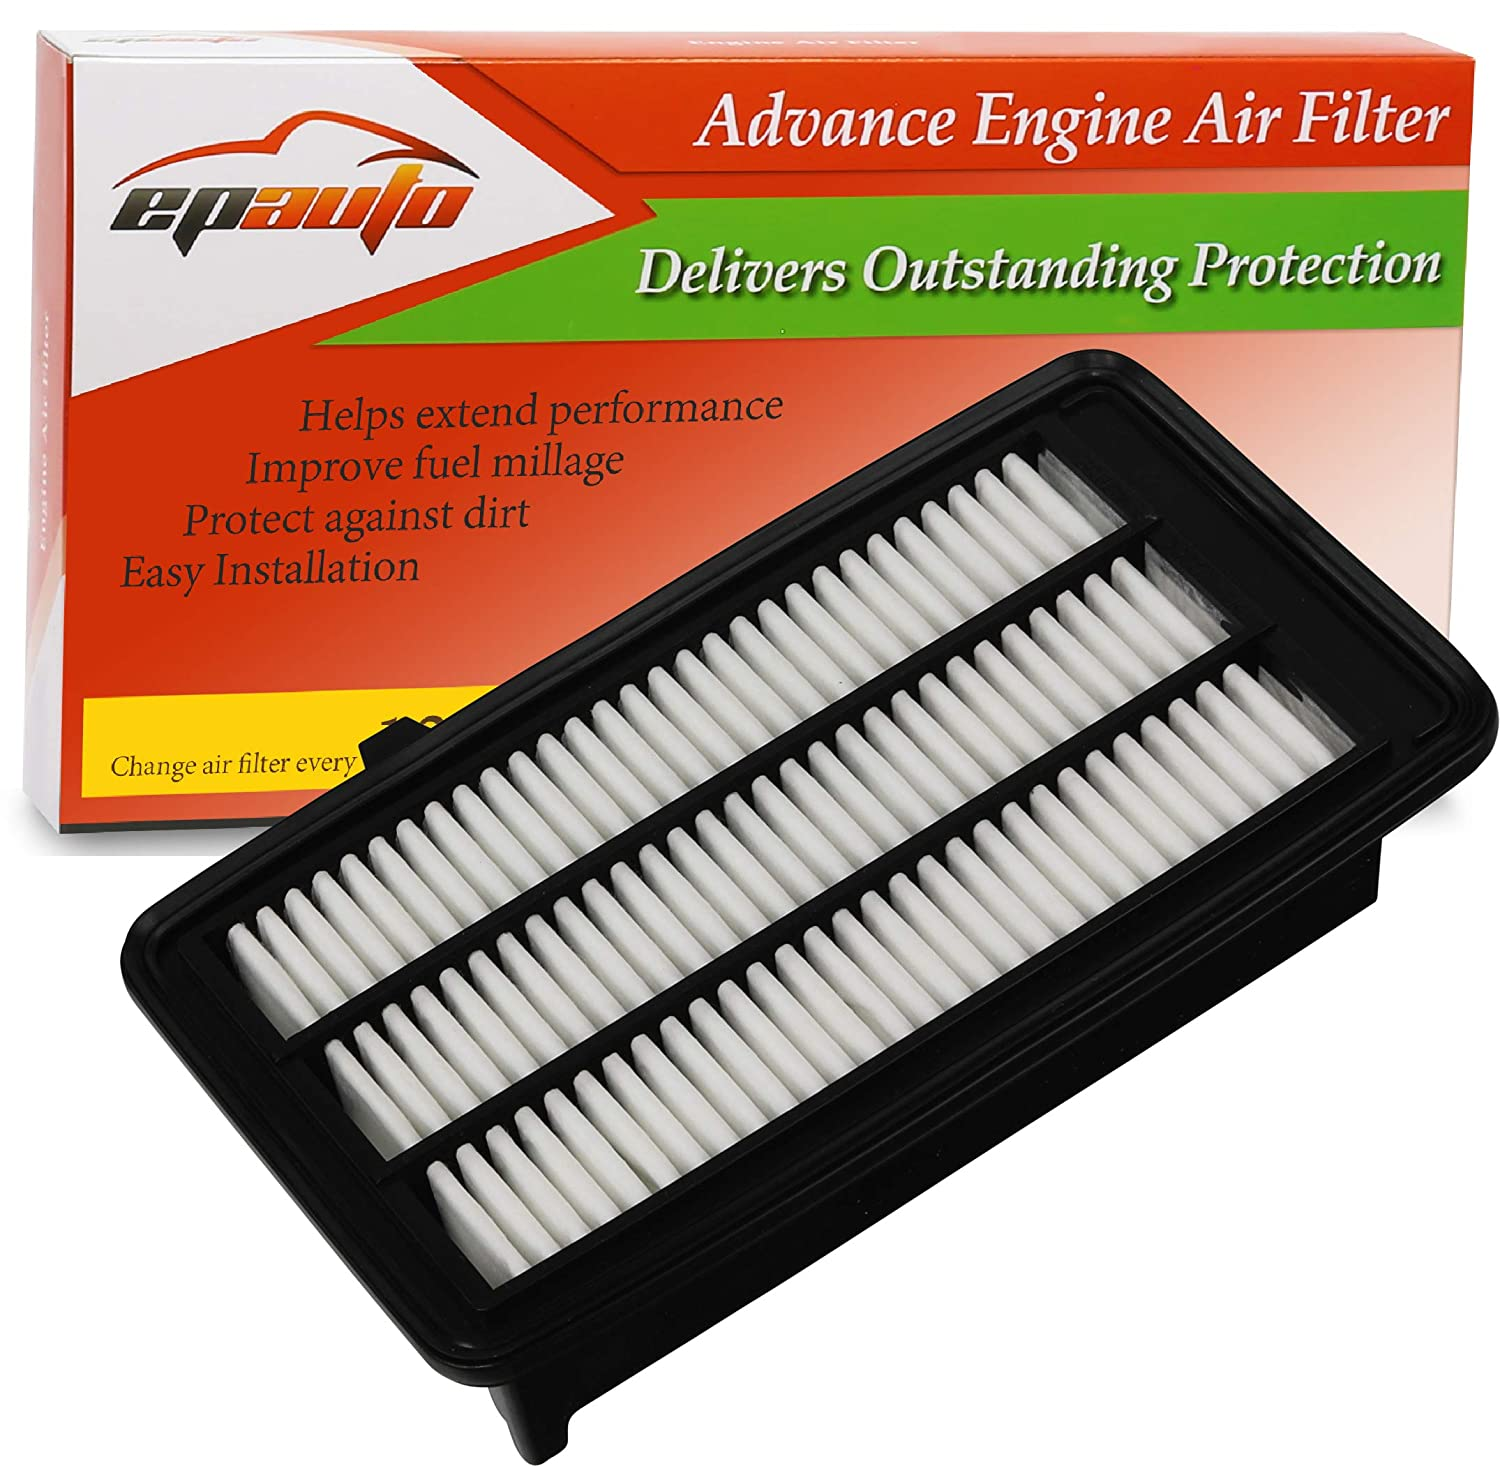 EPAuto GP050 2017-2018 CA12050 Replacement for Honda Extra Guard Rigid Panel Air Filter for Civic 1.5L 2016-2018 CR-V 1.5L